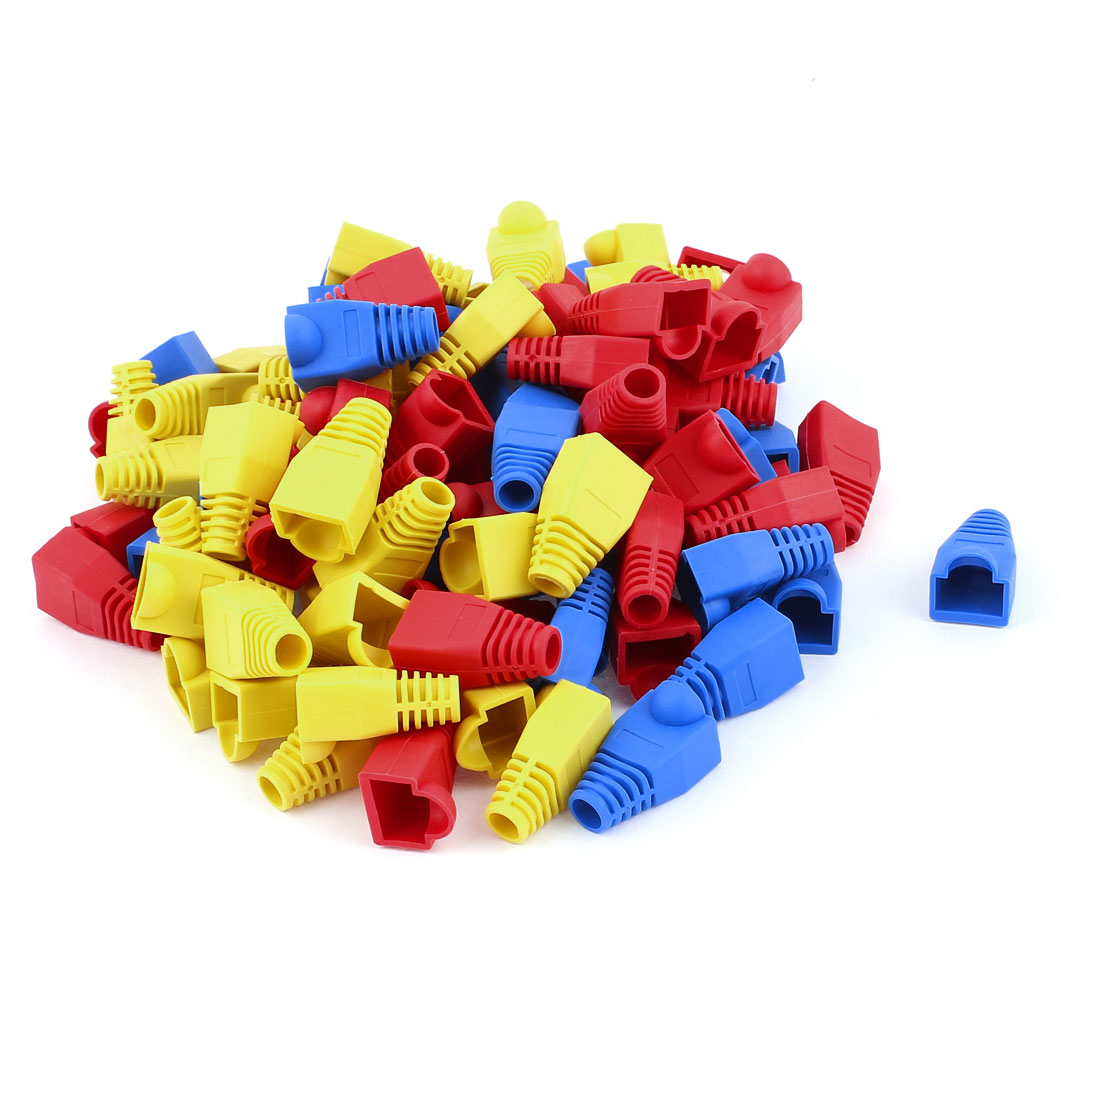 100pcs Plastic RJ45 8P8C Cat5 Network Cable Adapter Boot Cap Cover Protector Blue Red Yellow